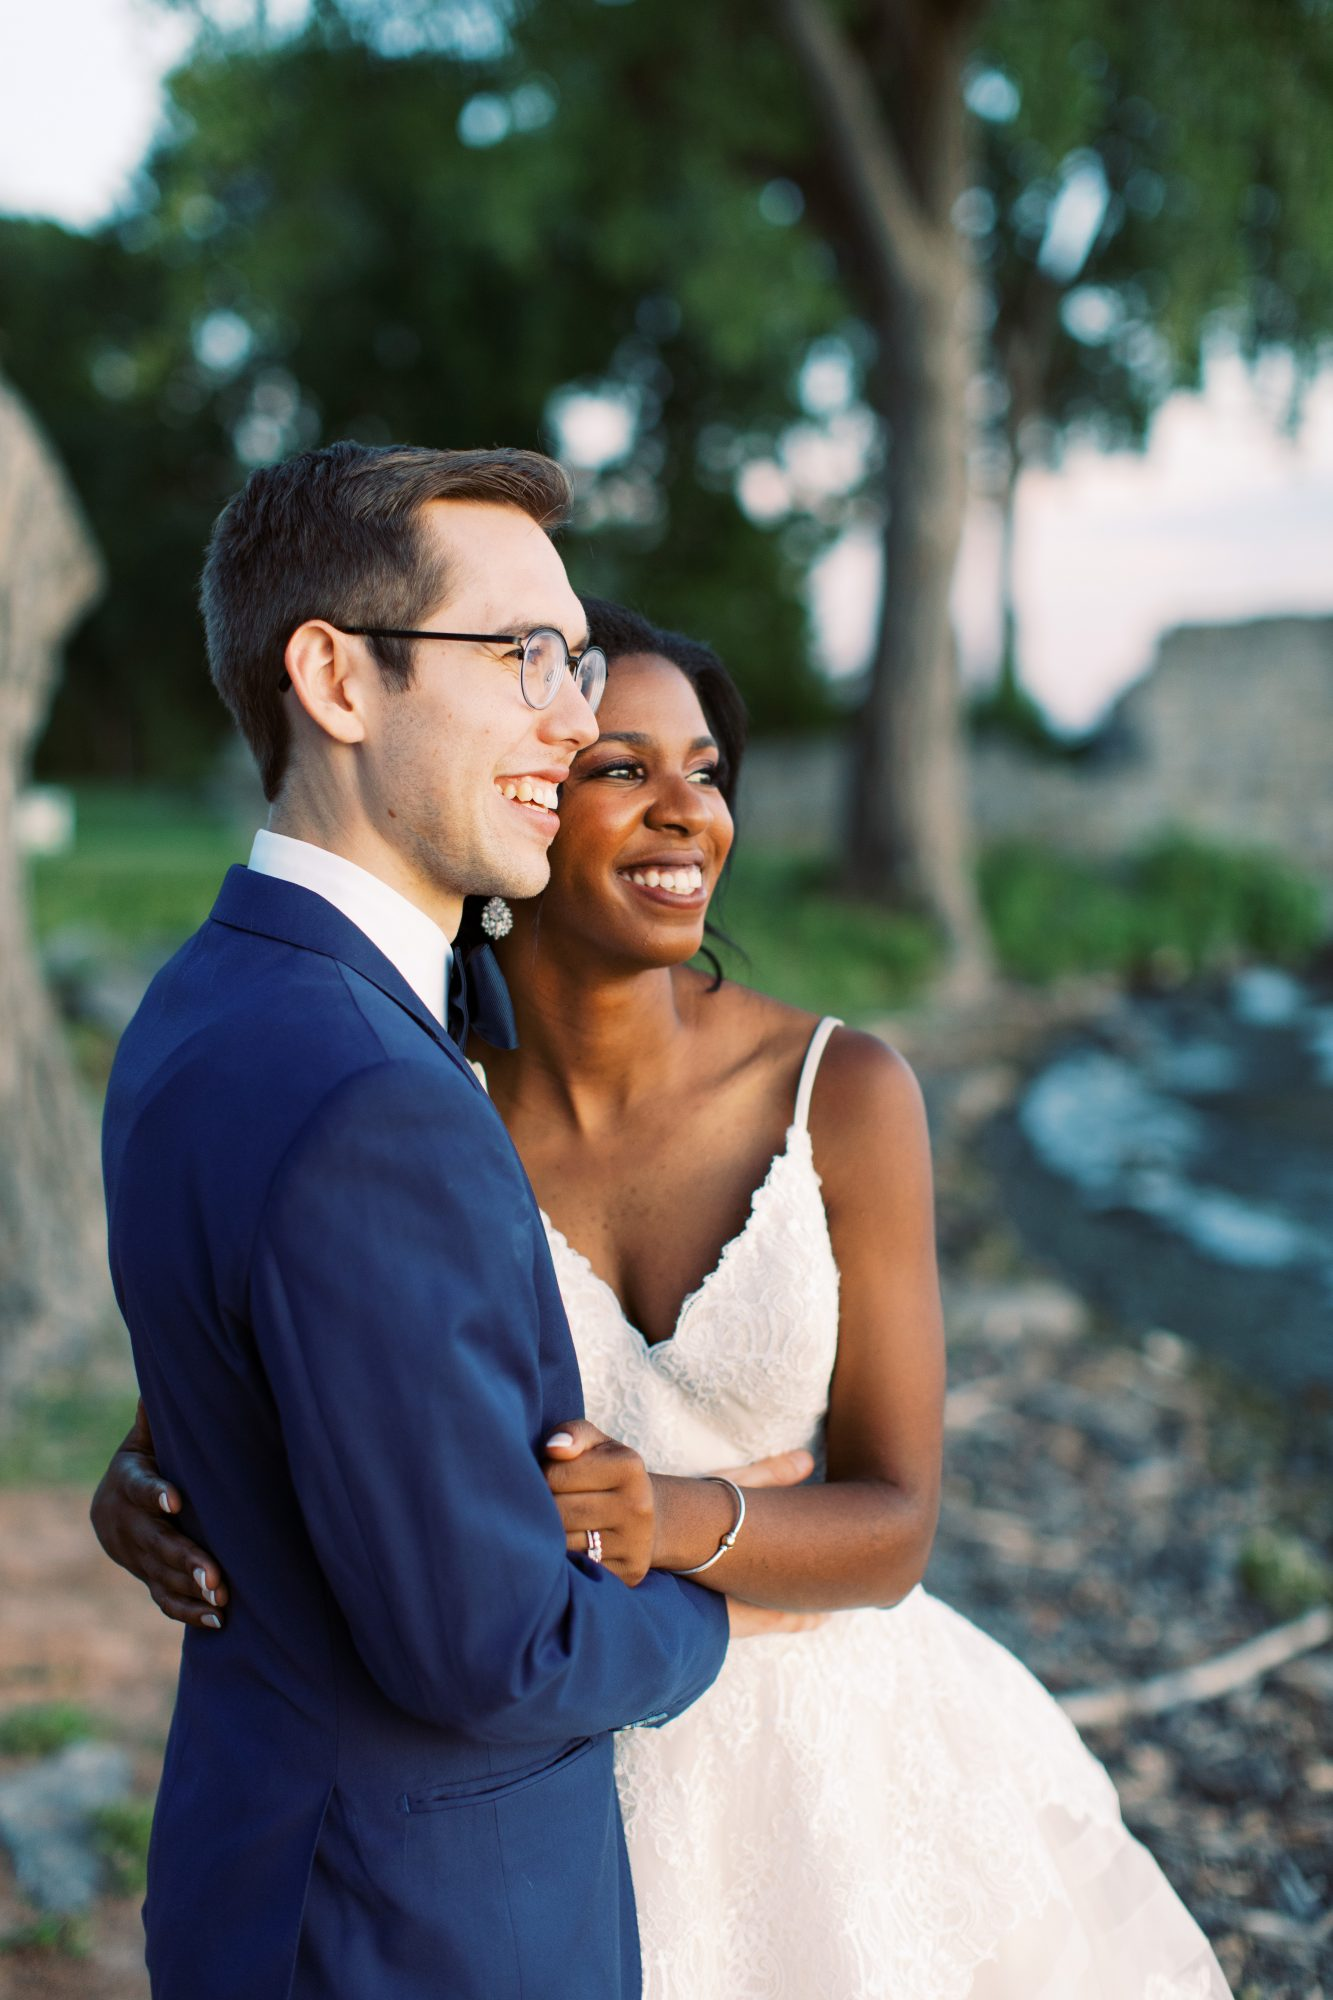 charlene jeremy wedding couple intimate portrait